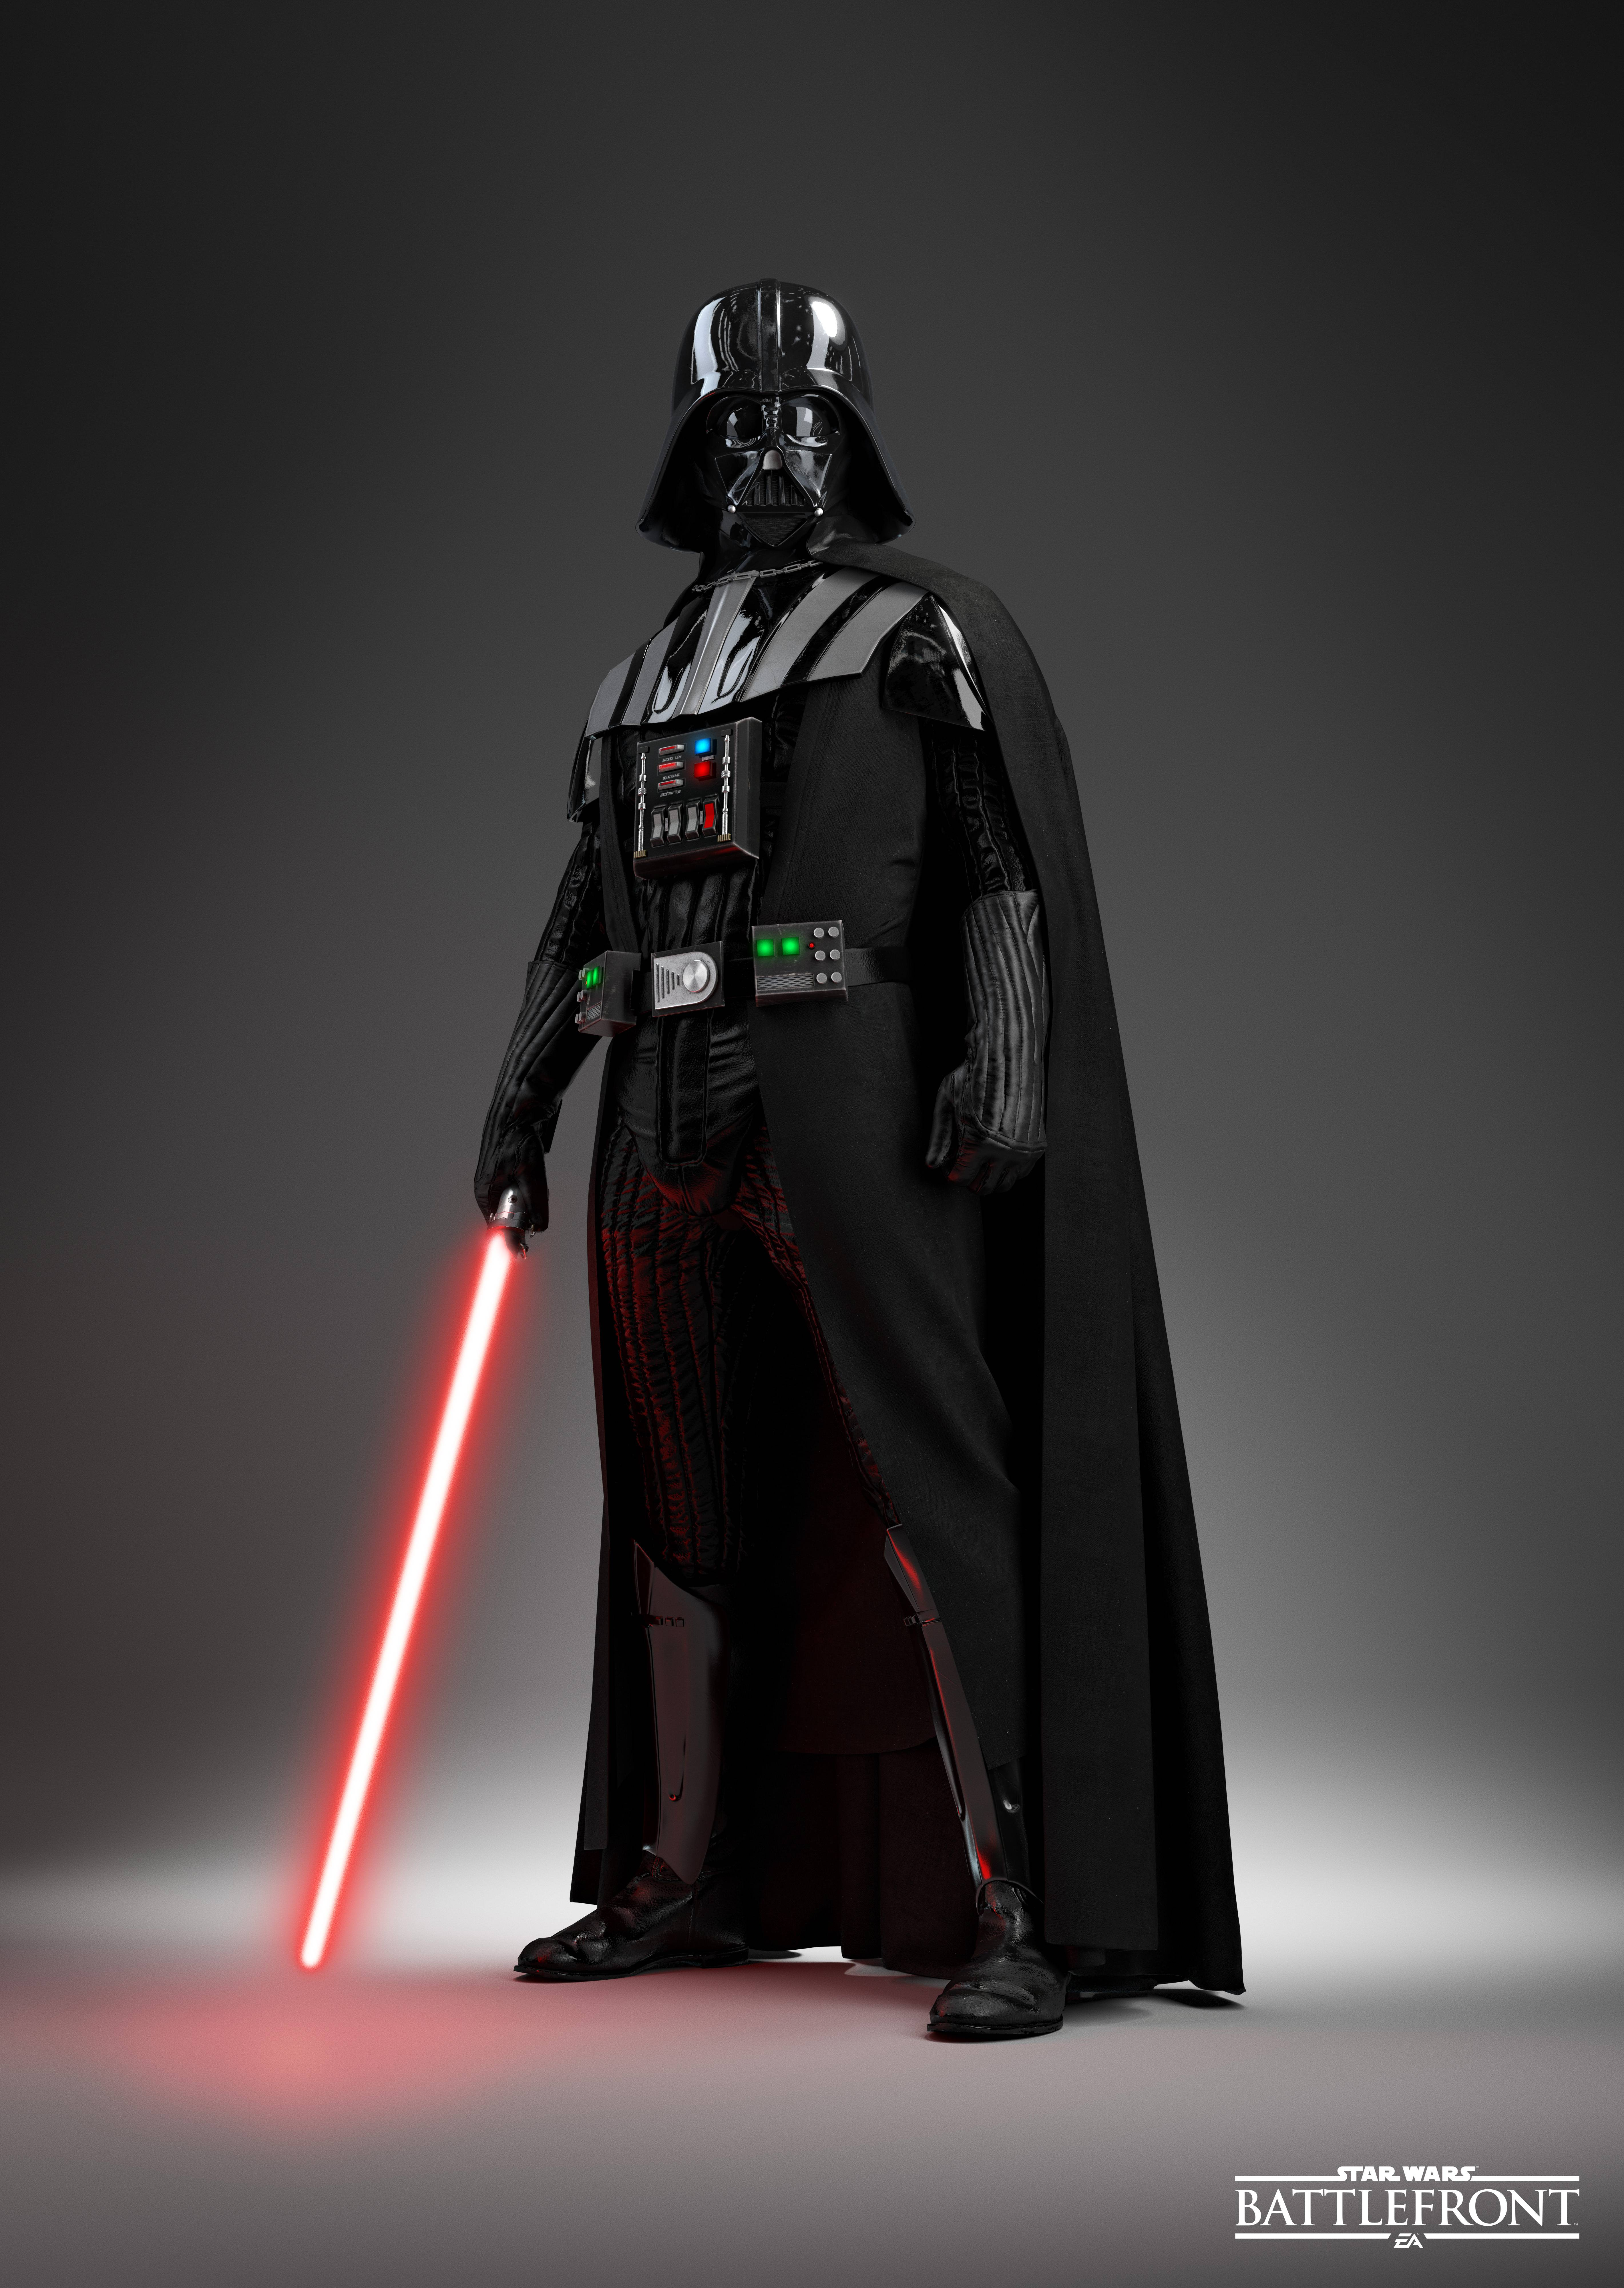 People 5680x8000 Darth Vader Sith Star Wars Star Wars: Battlefront lightsaber Star Wars Villains video games simple background